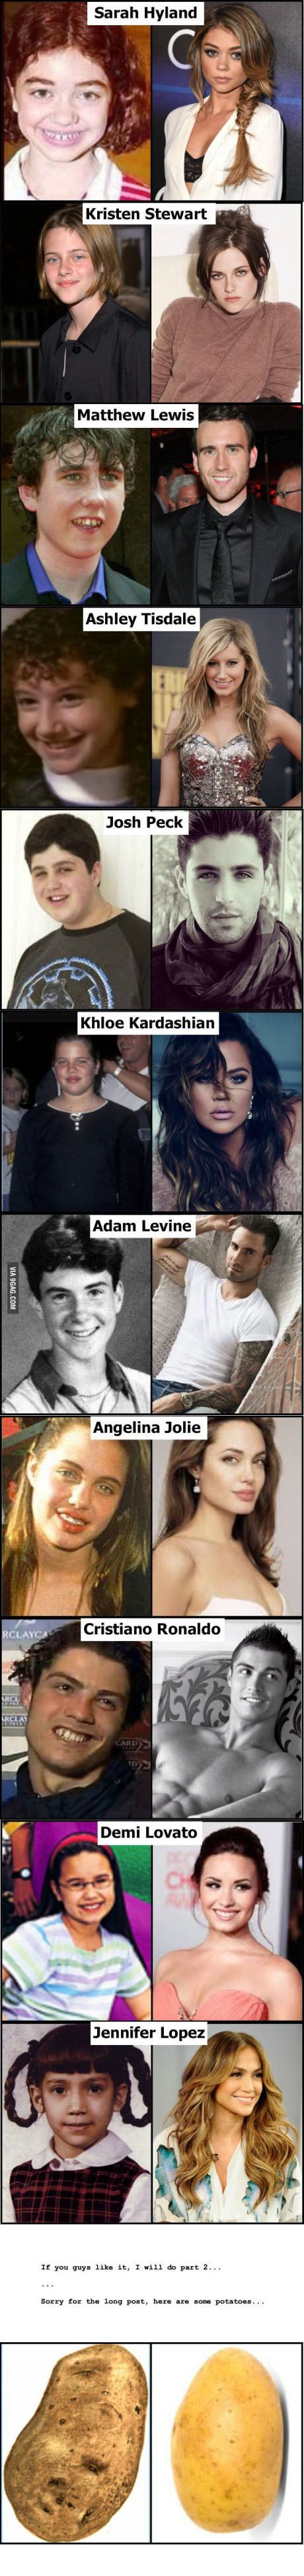 Celebrities then and now...